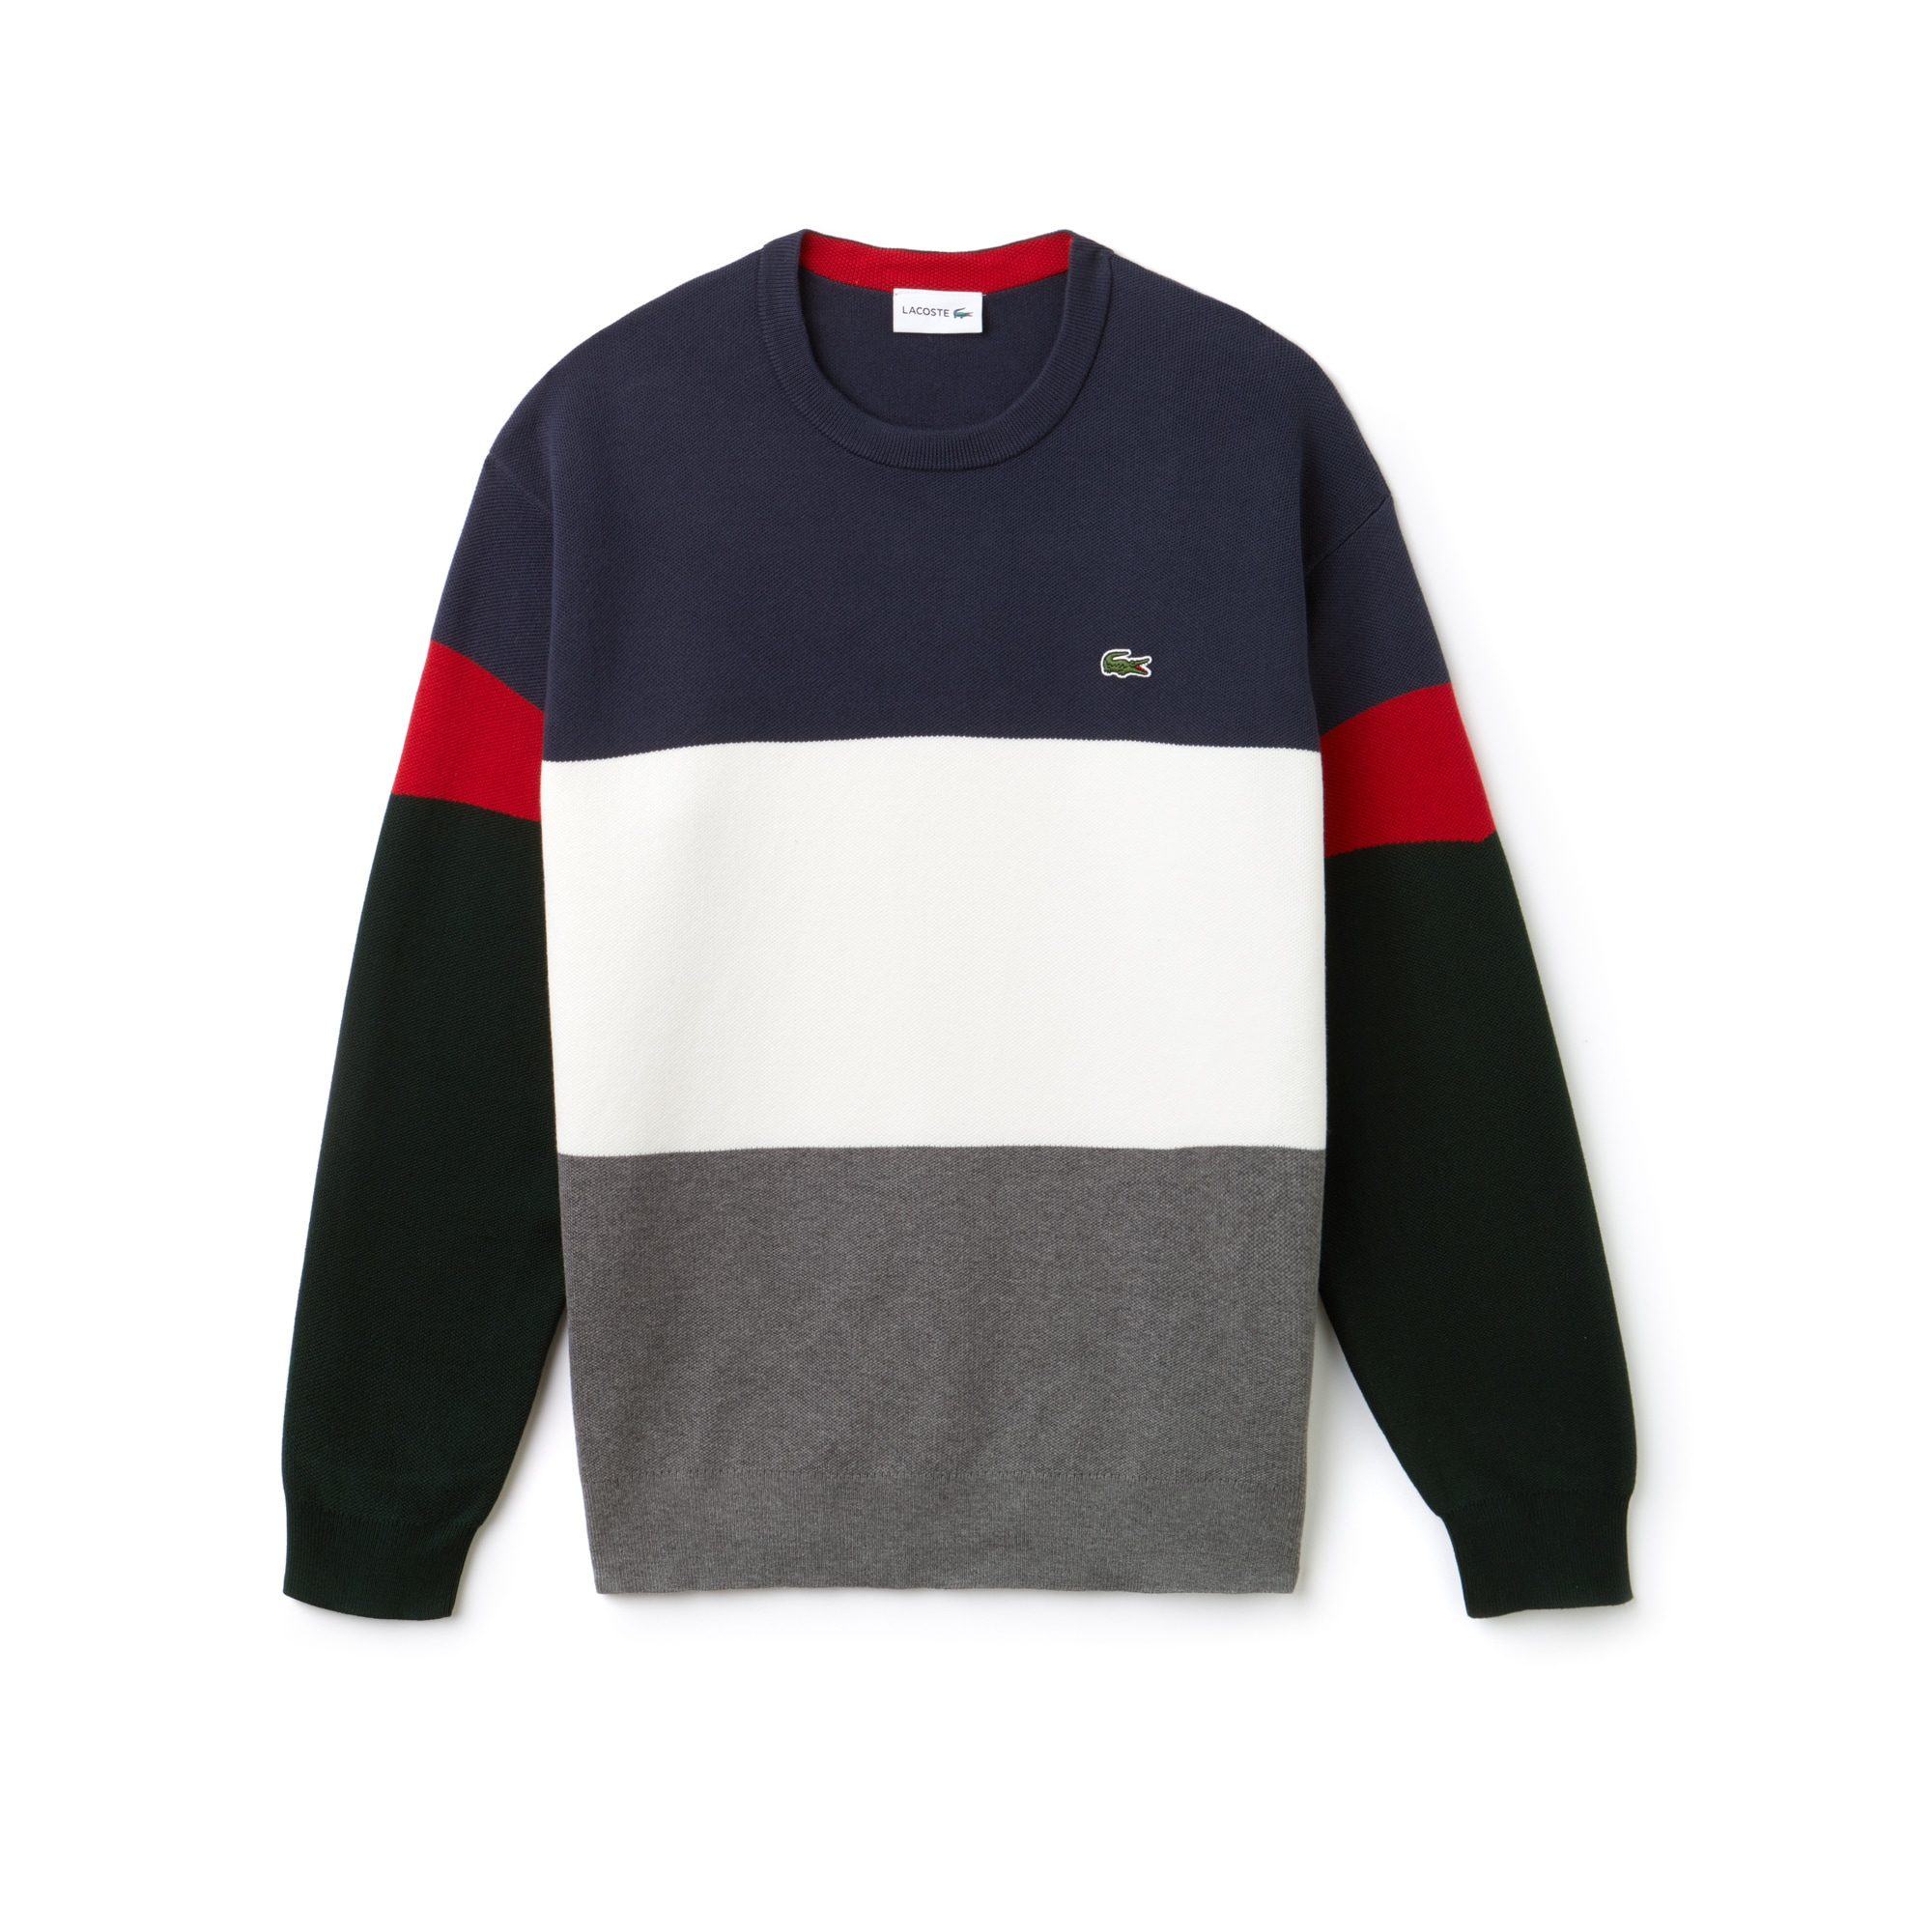 802ff4df76a Men's Crew Neck Colorblock Flat Ribbed Cotton Sweater